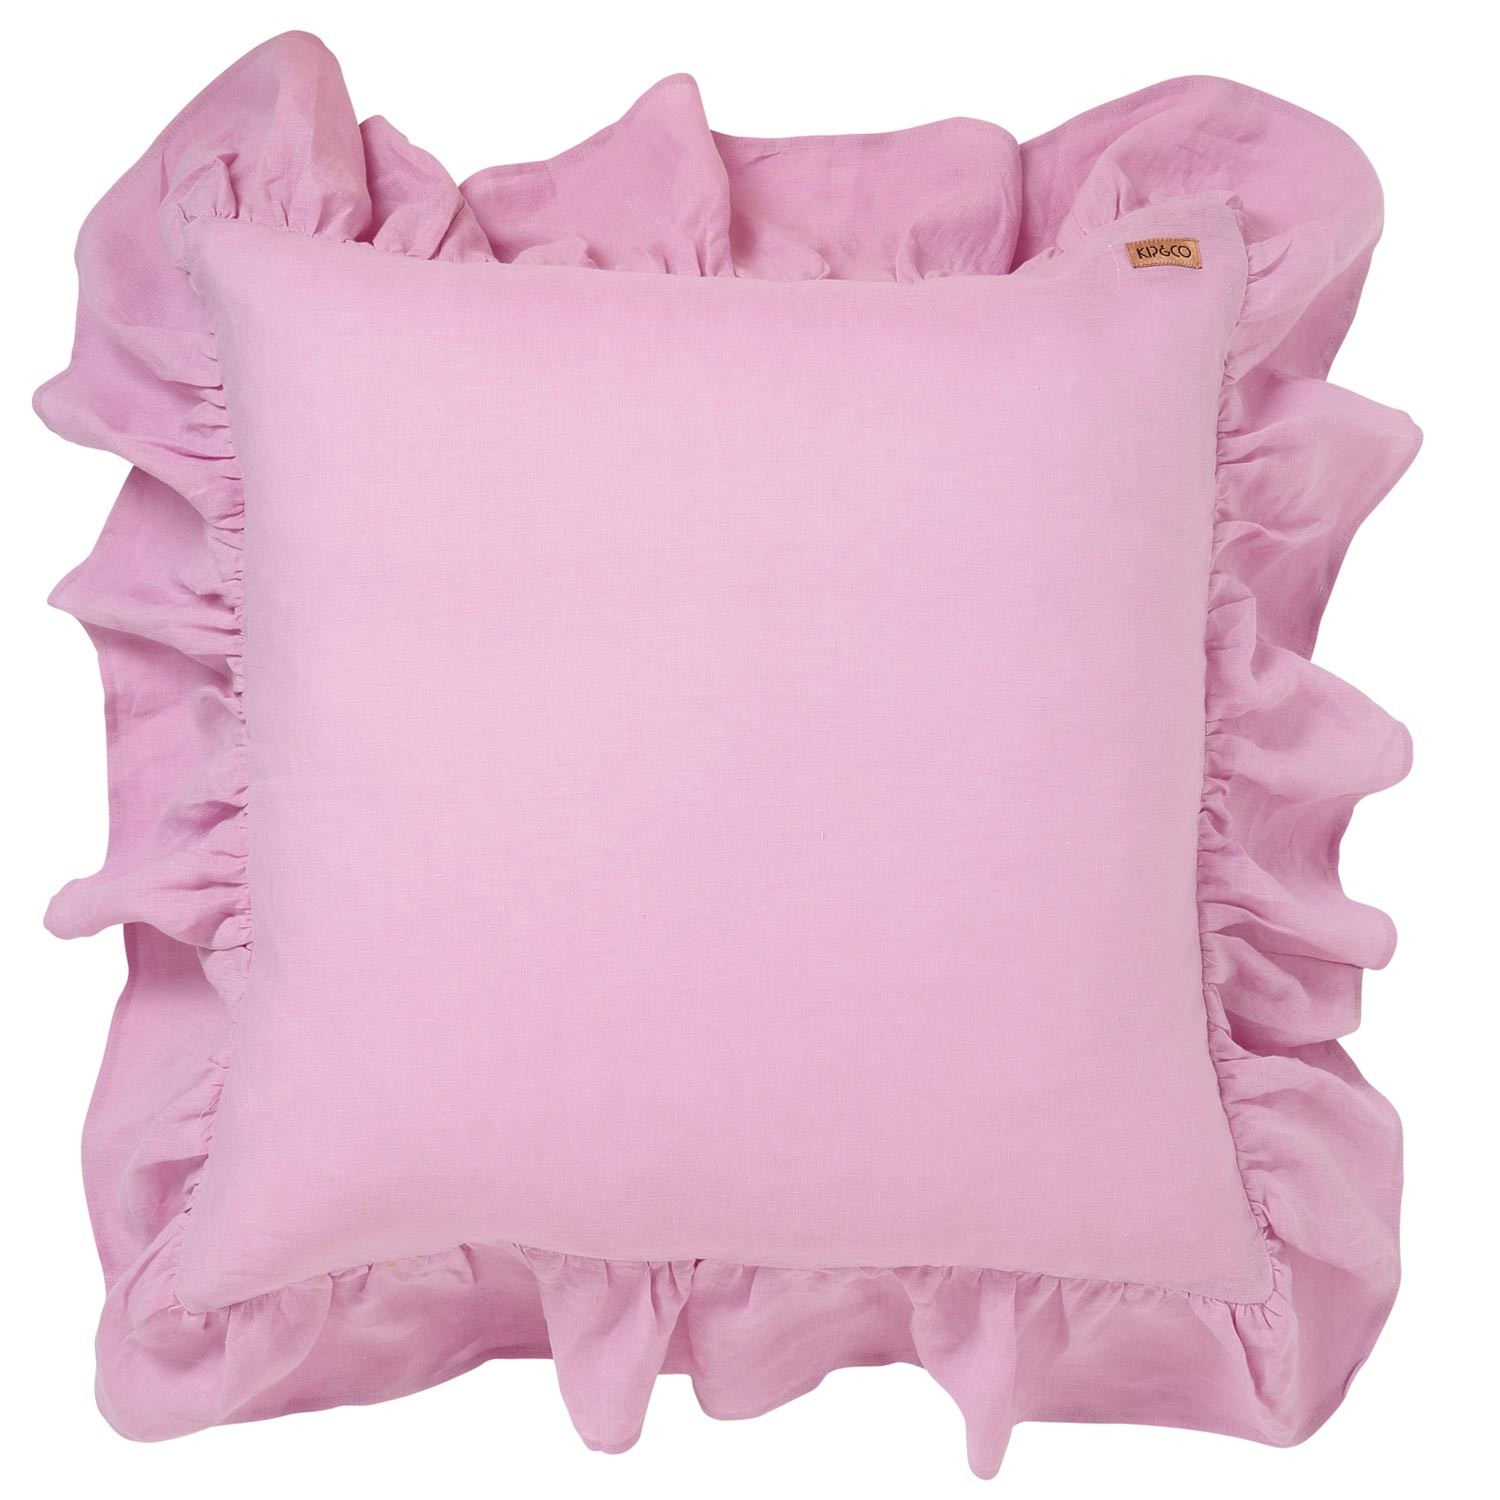 kip_co-aw18-orchid-linen-frill-euro